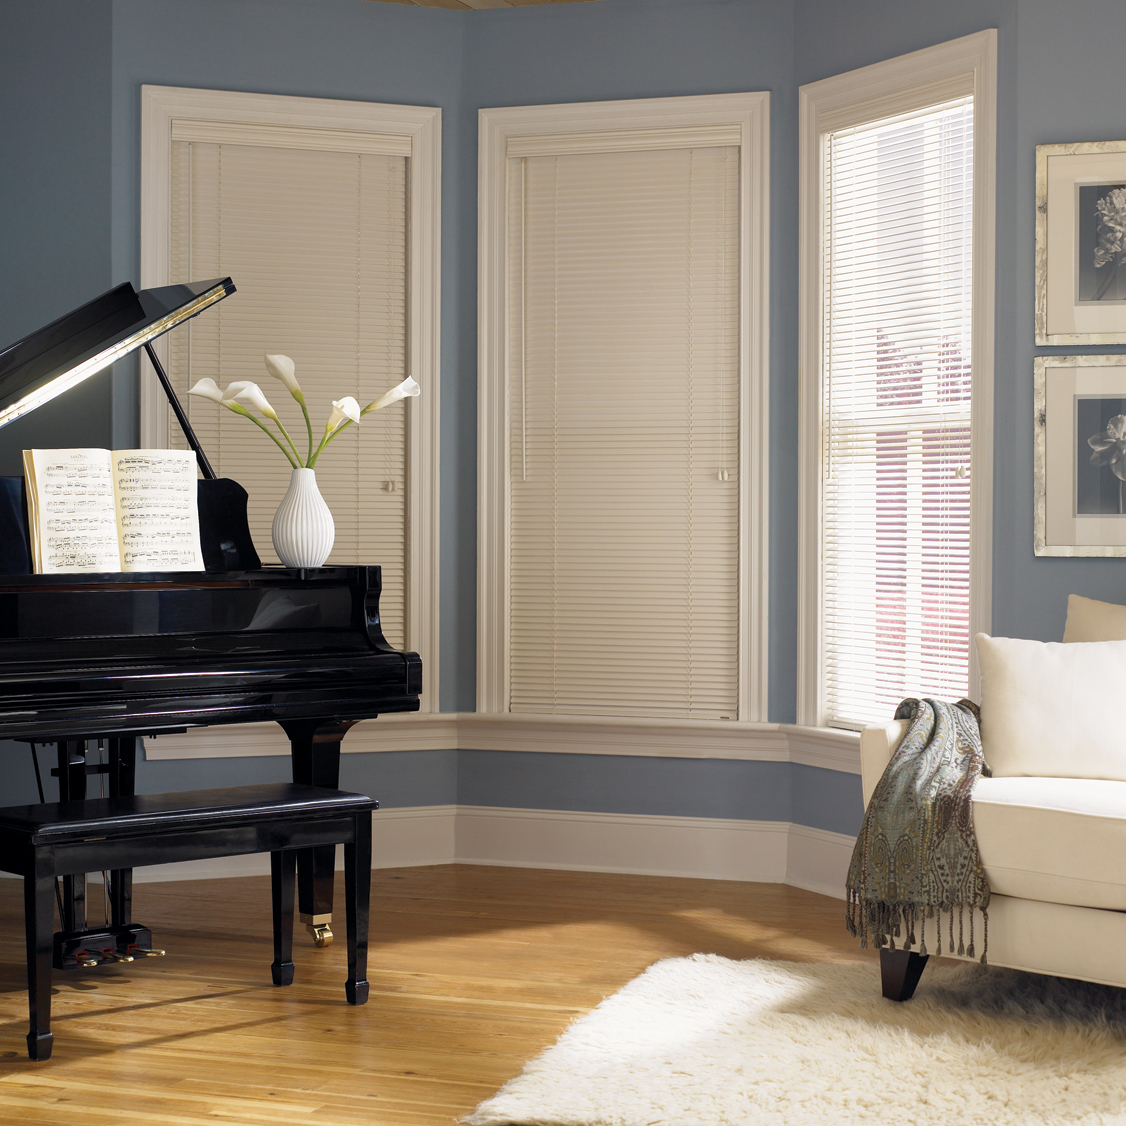 Wooden blinds with white window trim